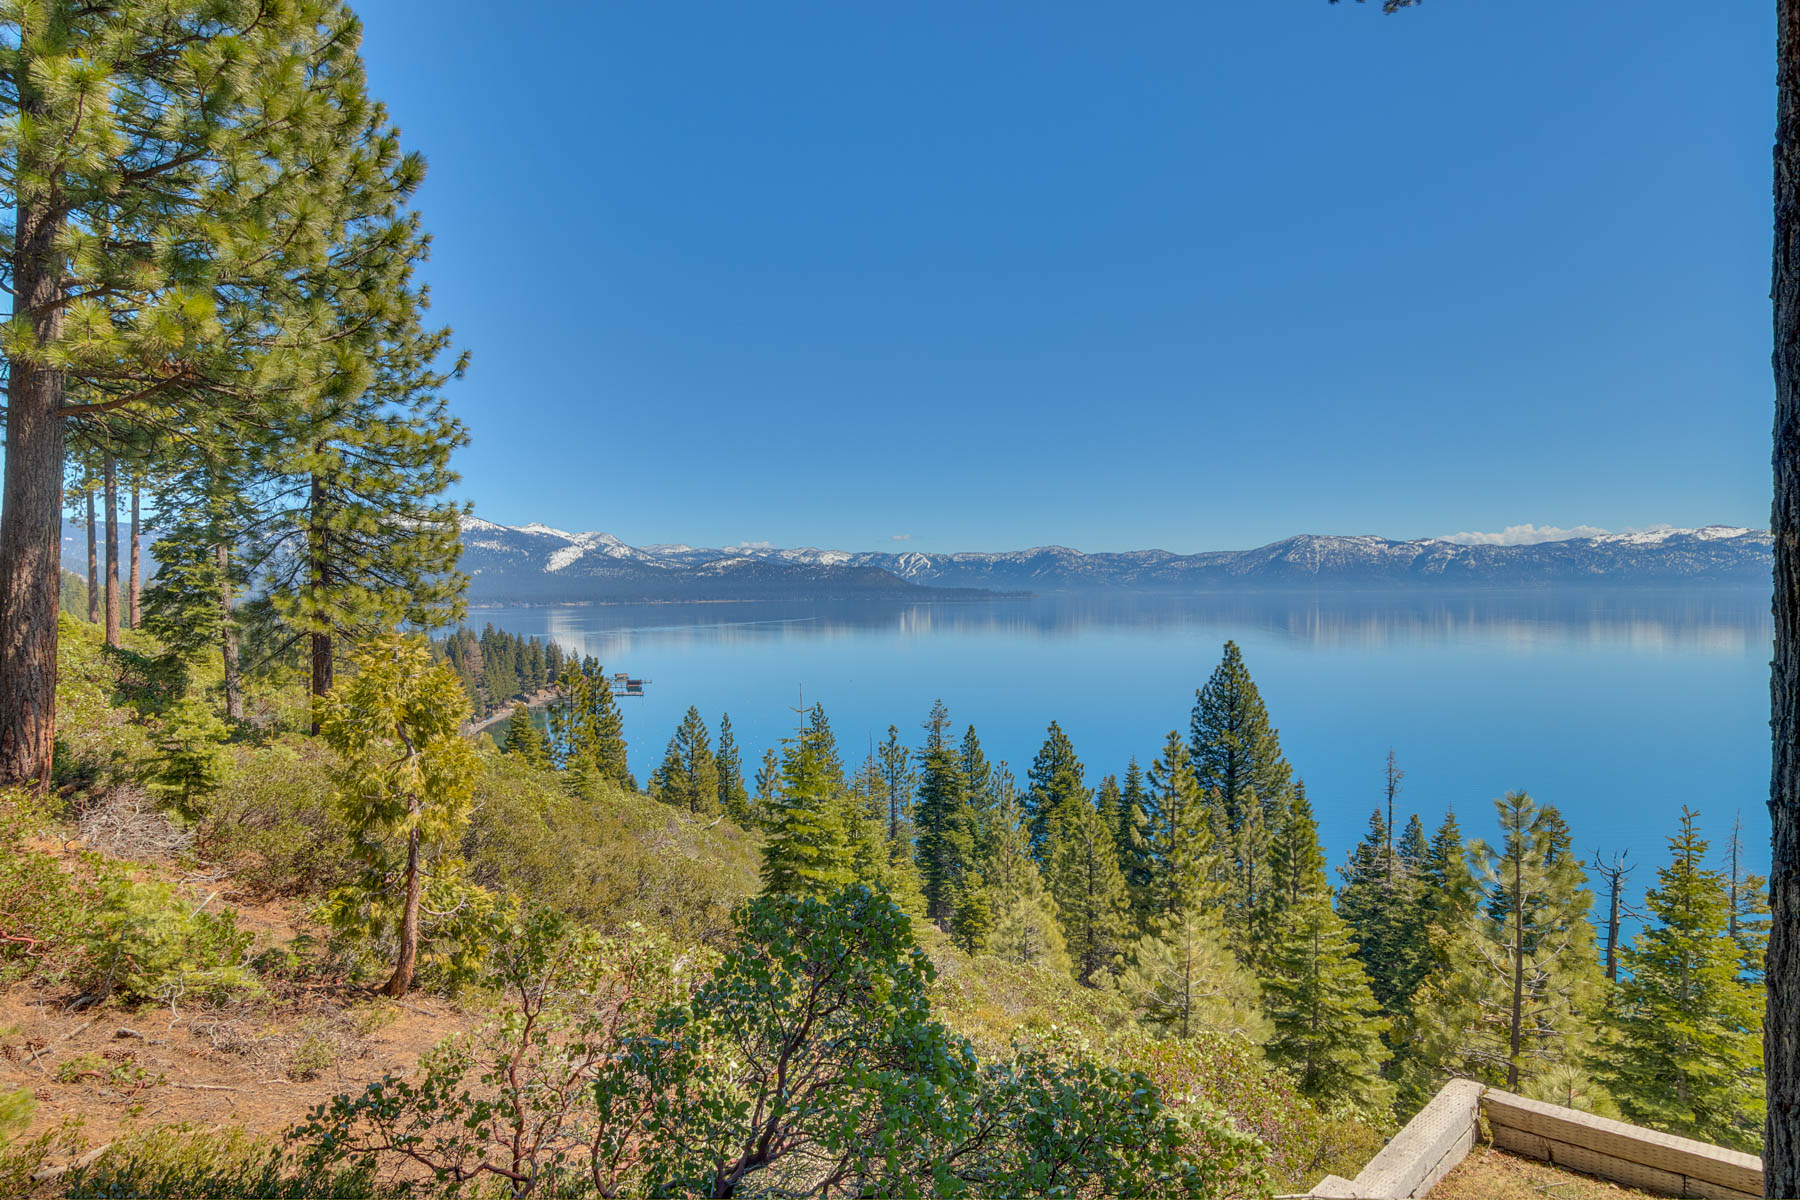 Property for Active at 488 Old County Road, Carnelian Bay, CA 96140 488 Old County Road Carnelian Bay, California 96140 United States